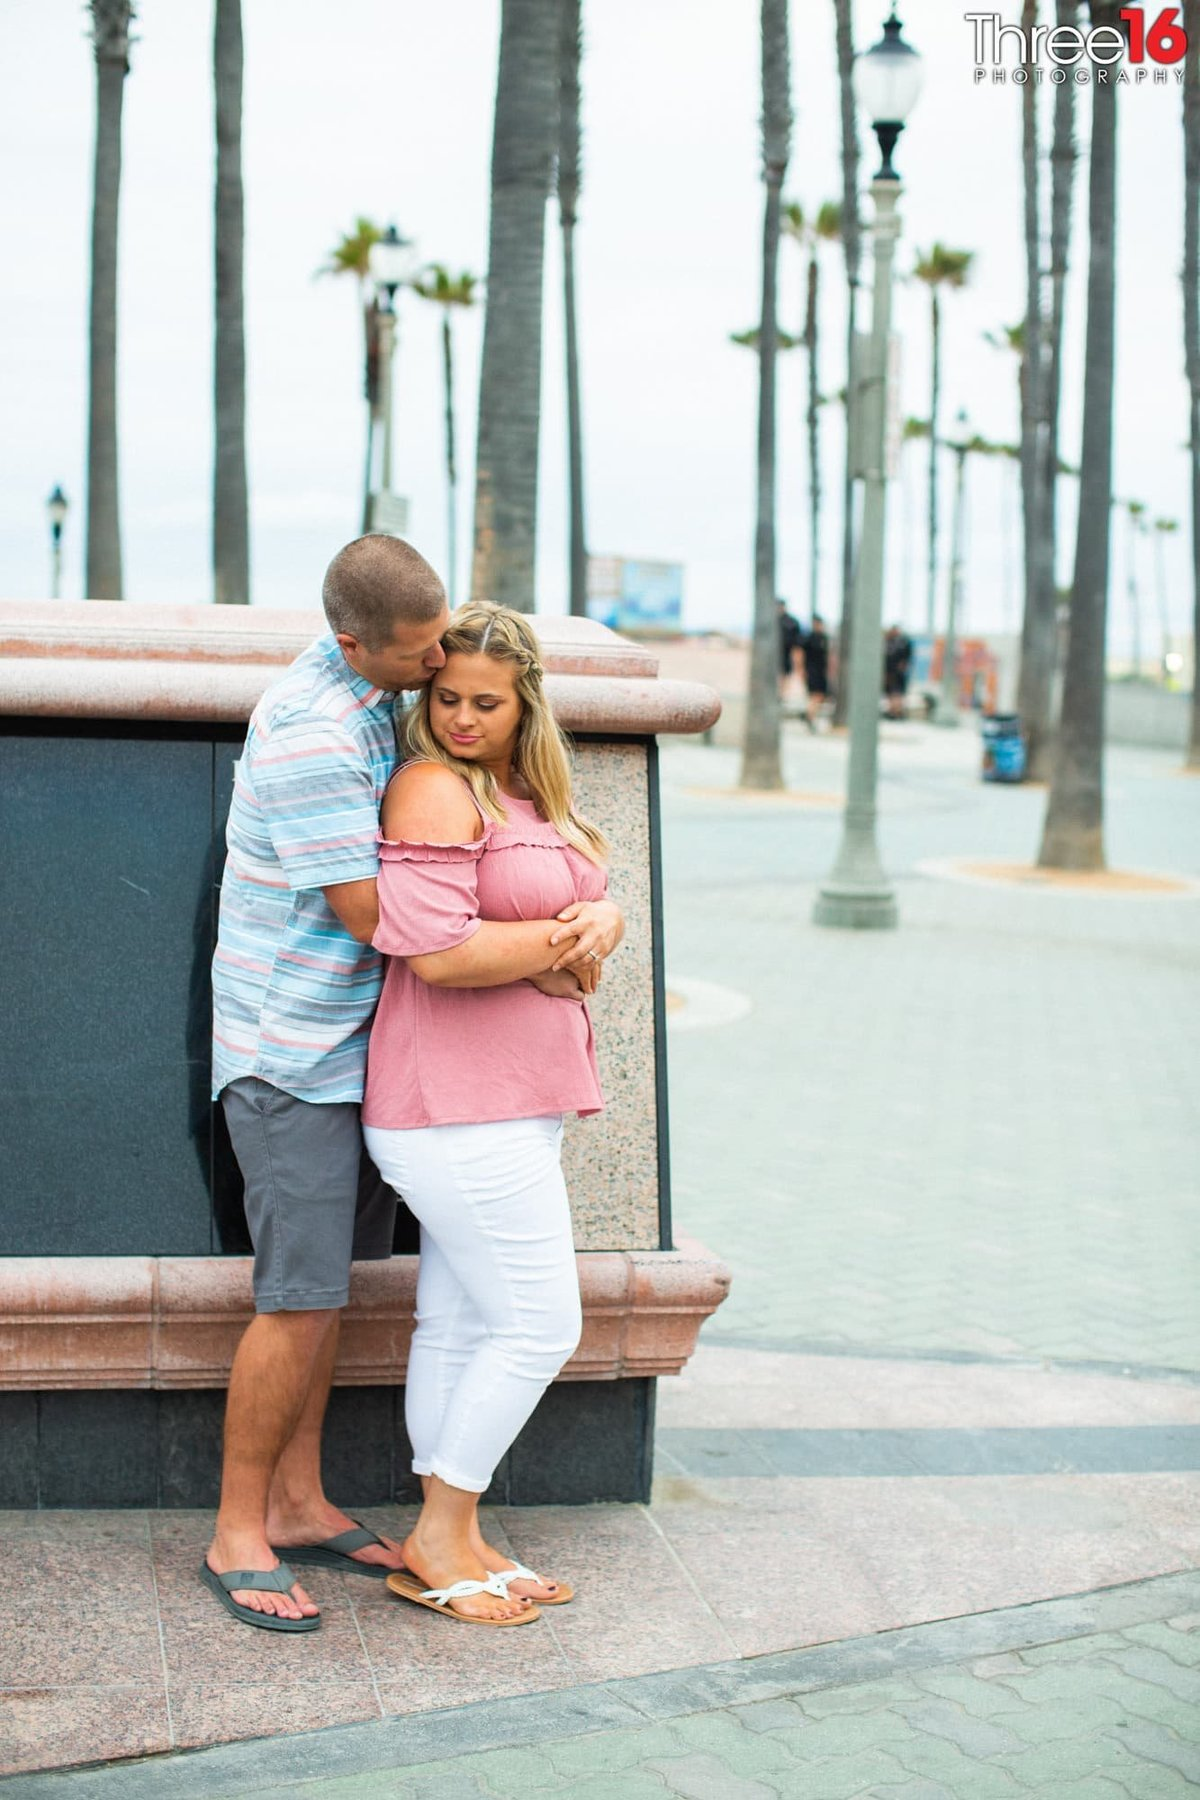 Huntington Beach Pier Engagement Orange County Professional Photography